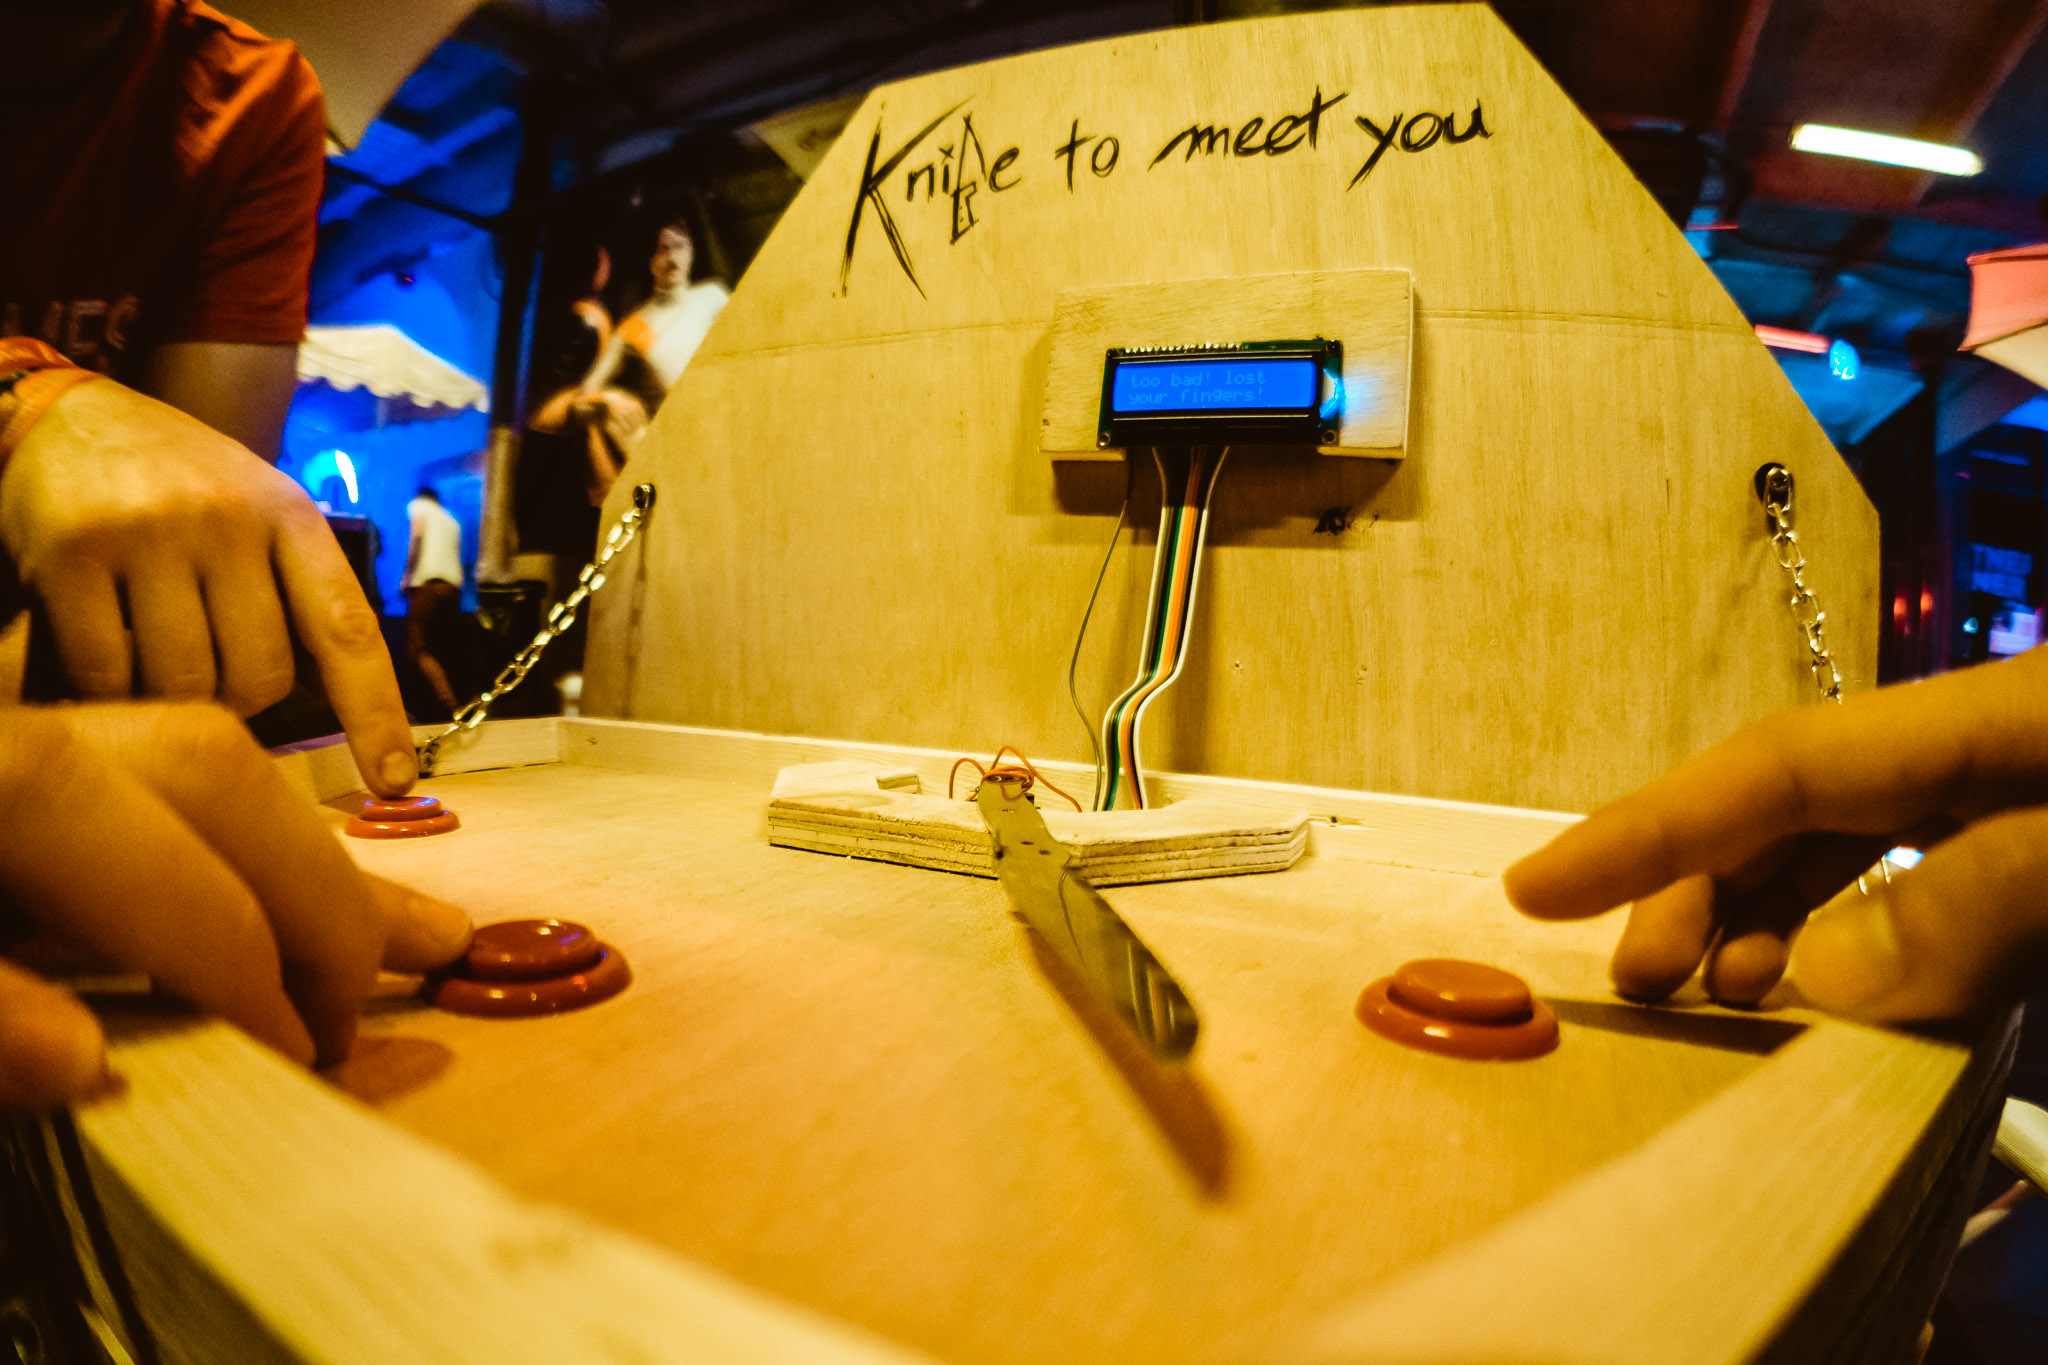 robin baumgarten s game experiments projects knife to meet you